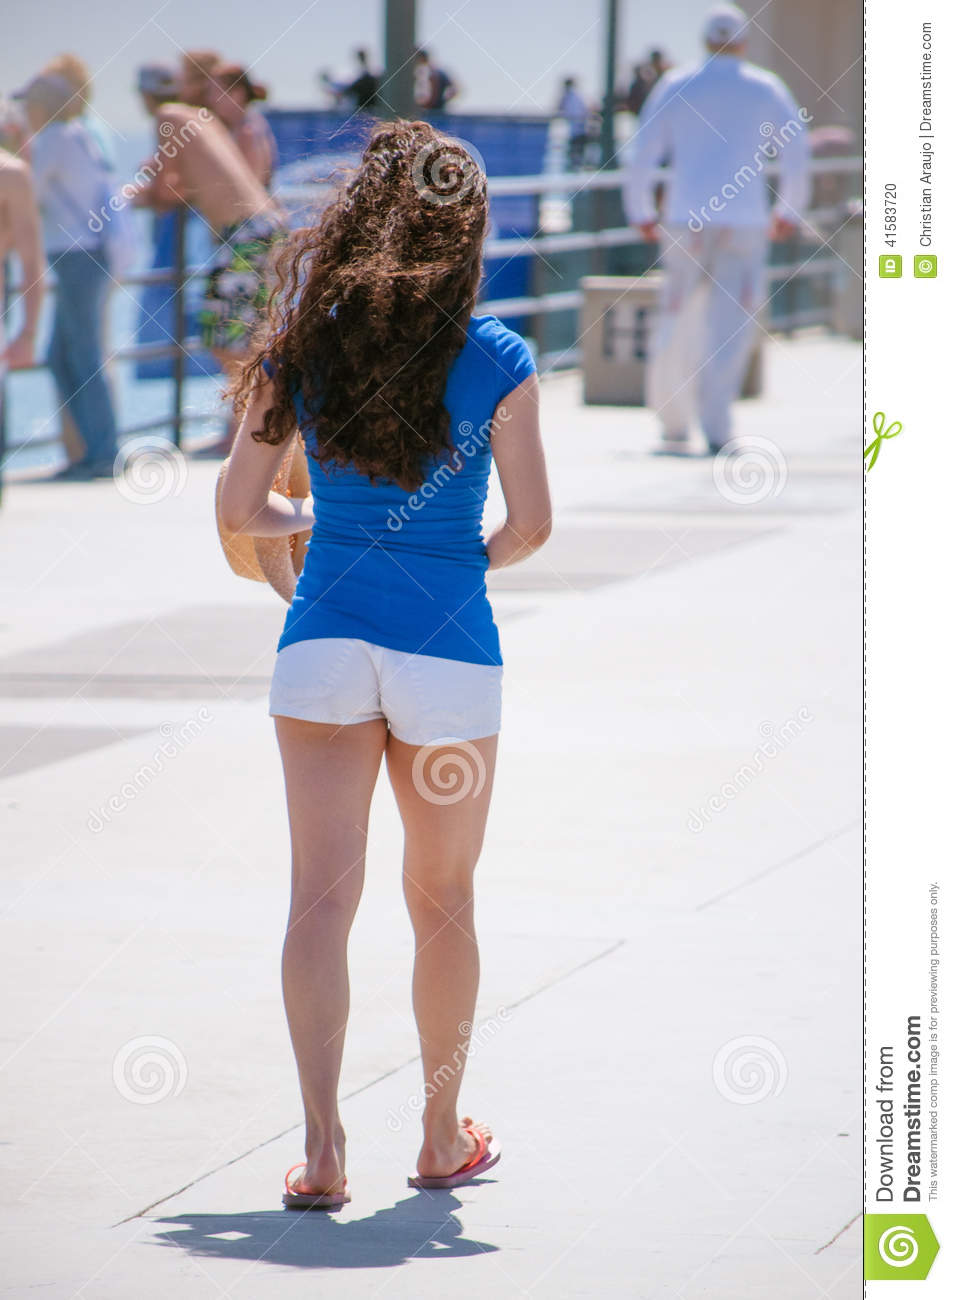 Girl In Shorts Stock Photo - Image: 41583720